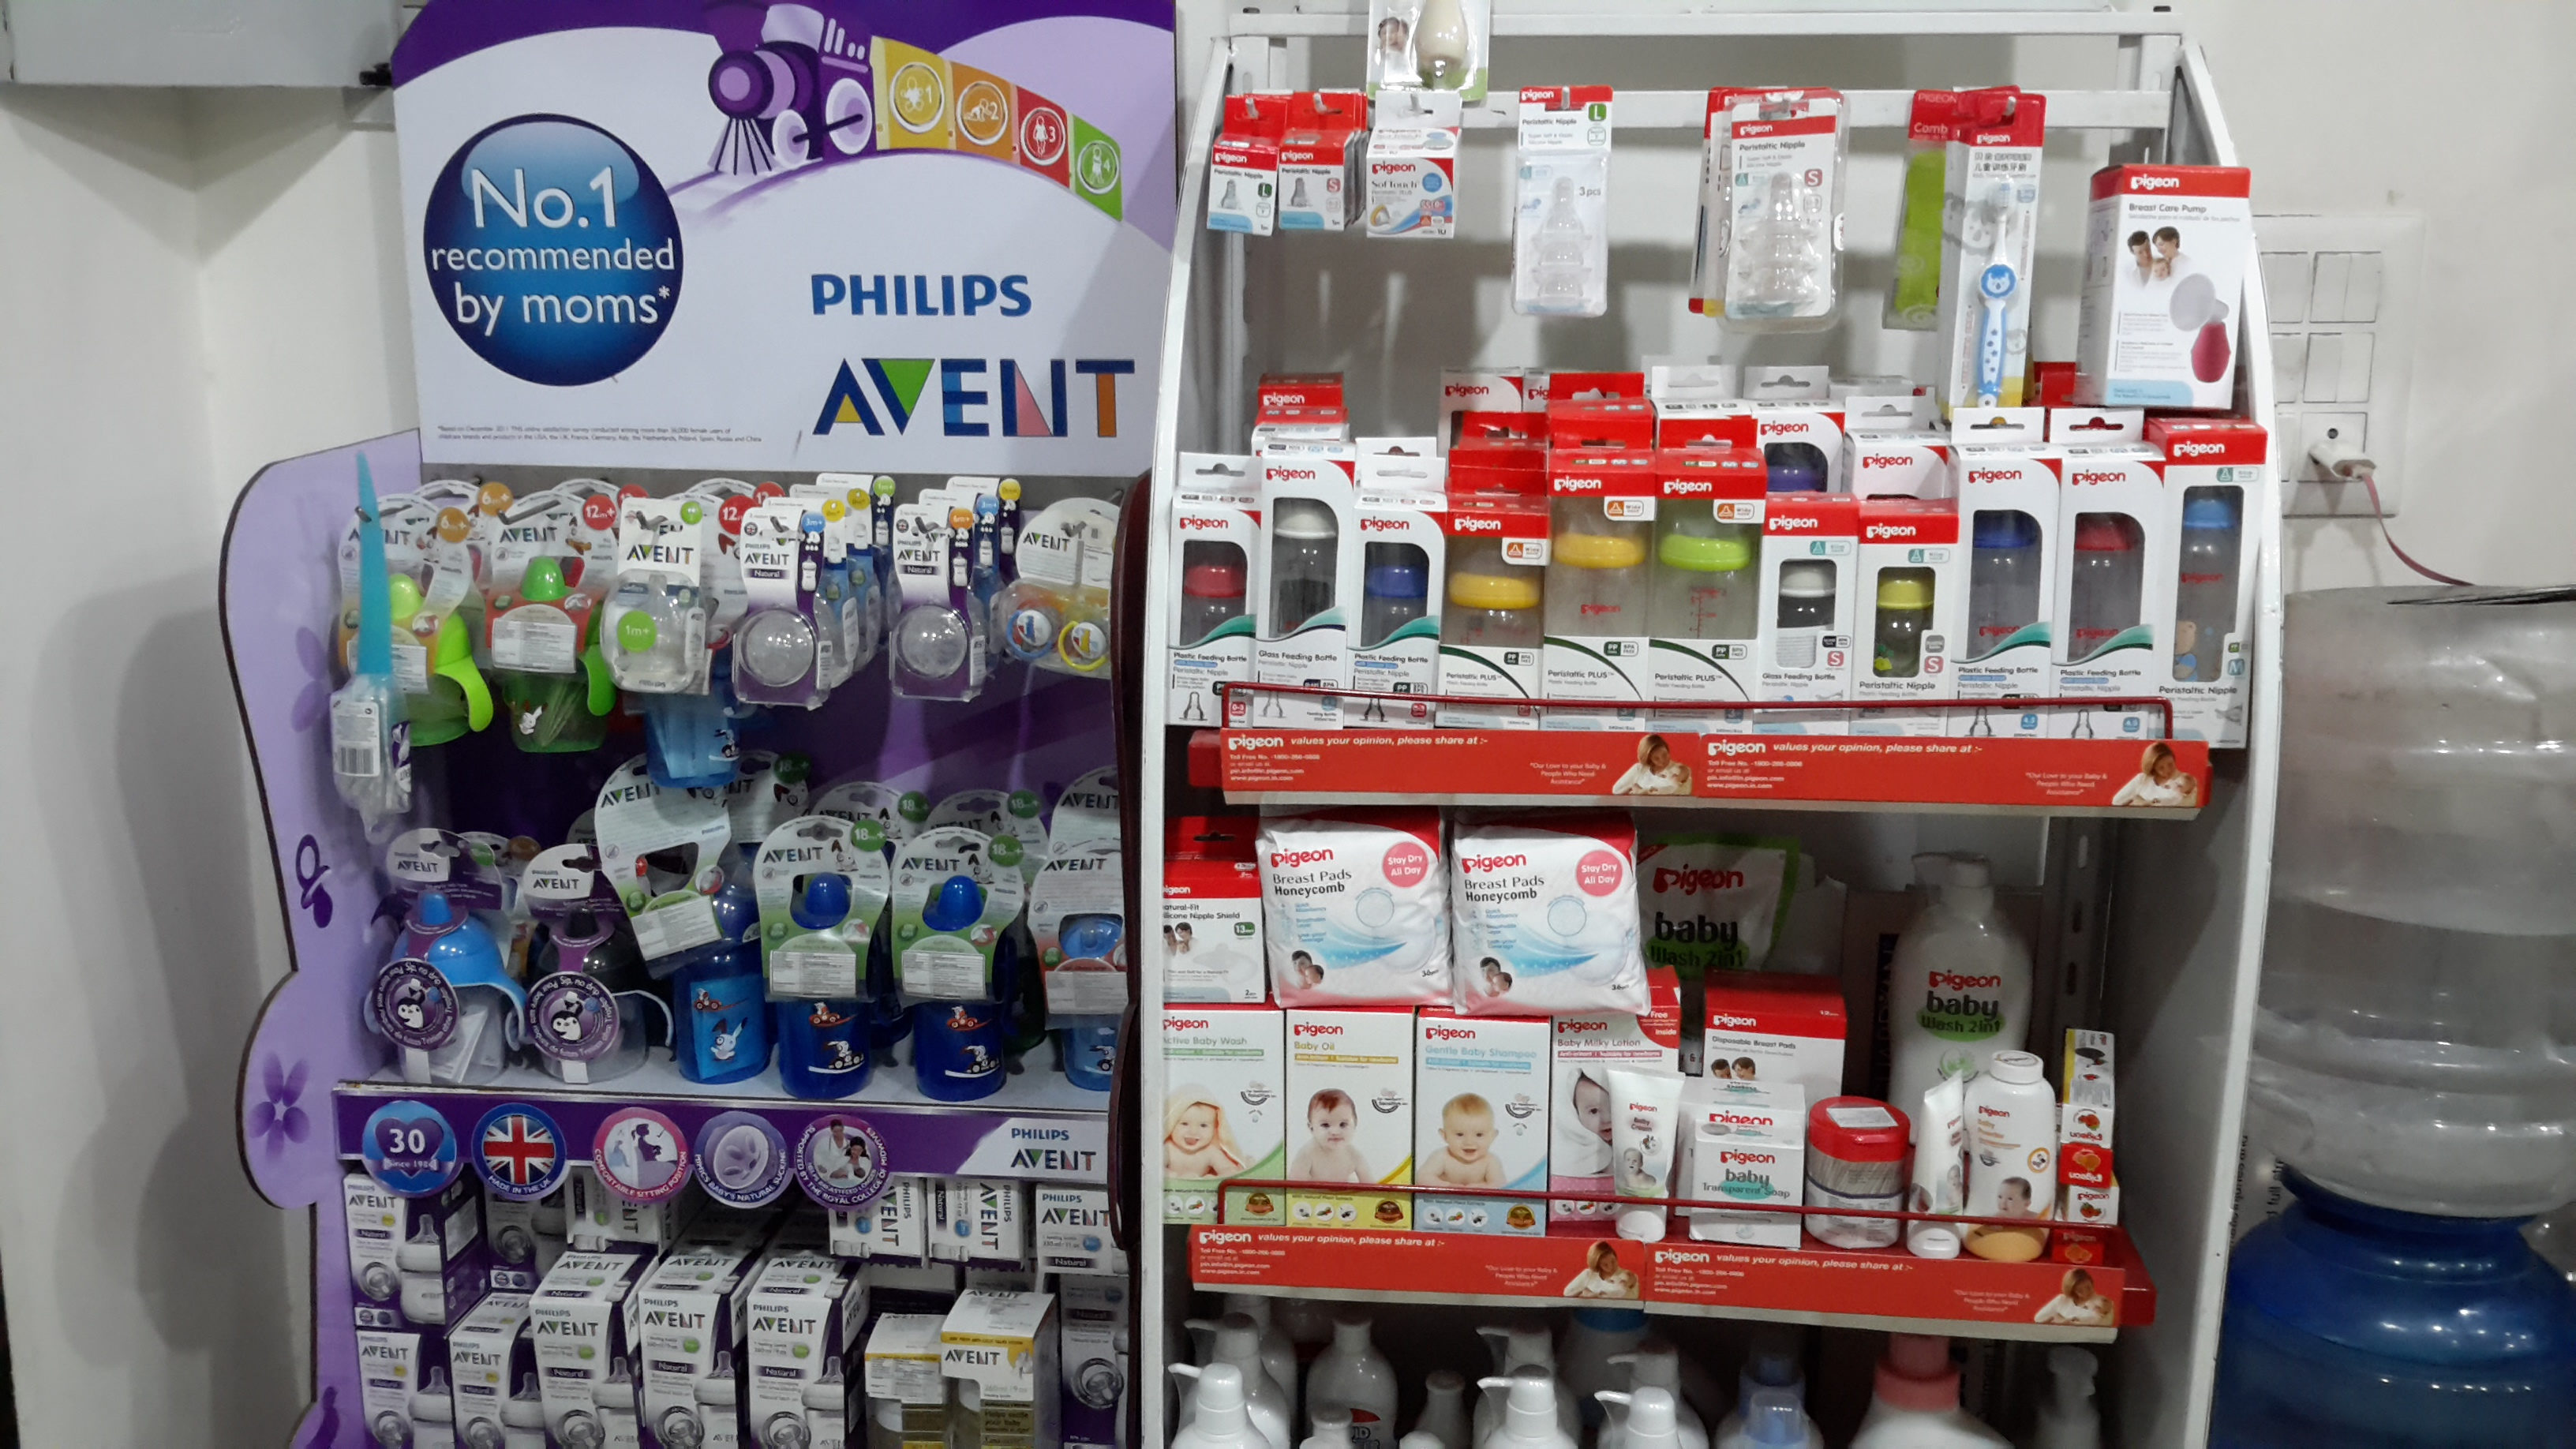 Profitable Pharmacy Business for Sale in Gurgaon